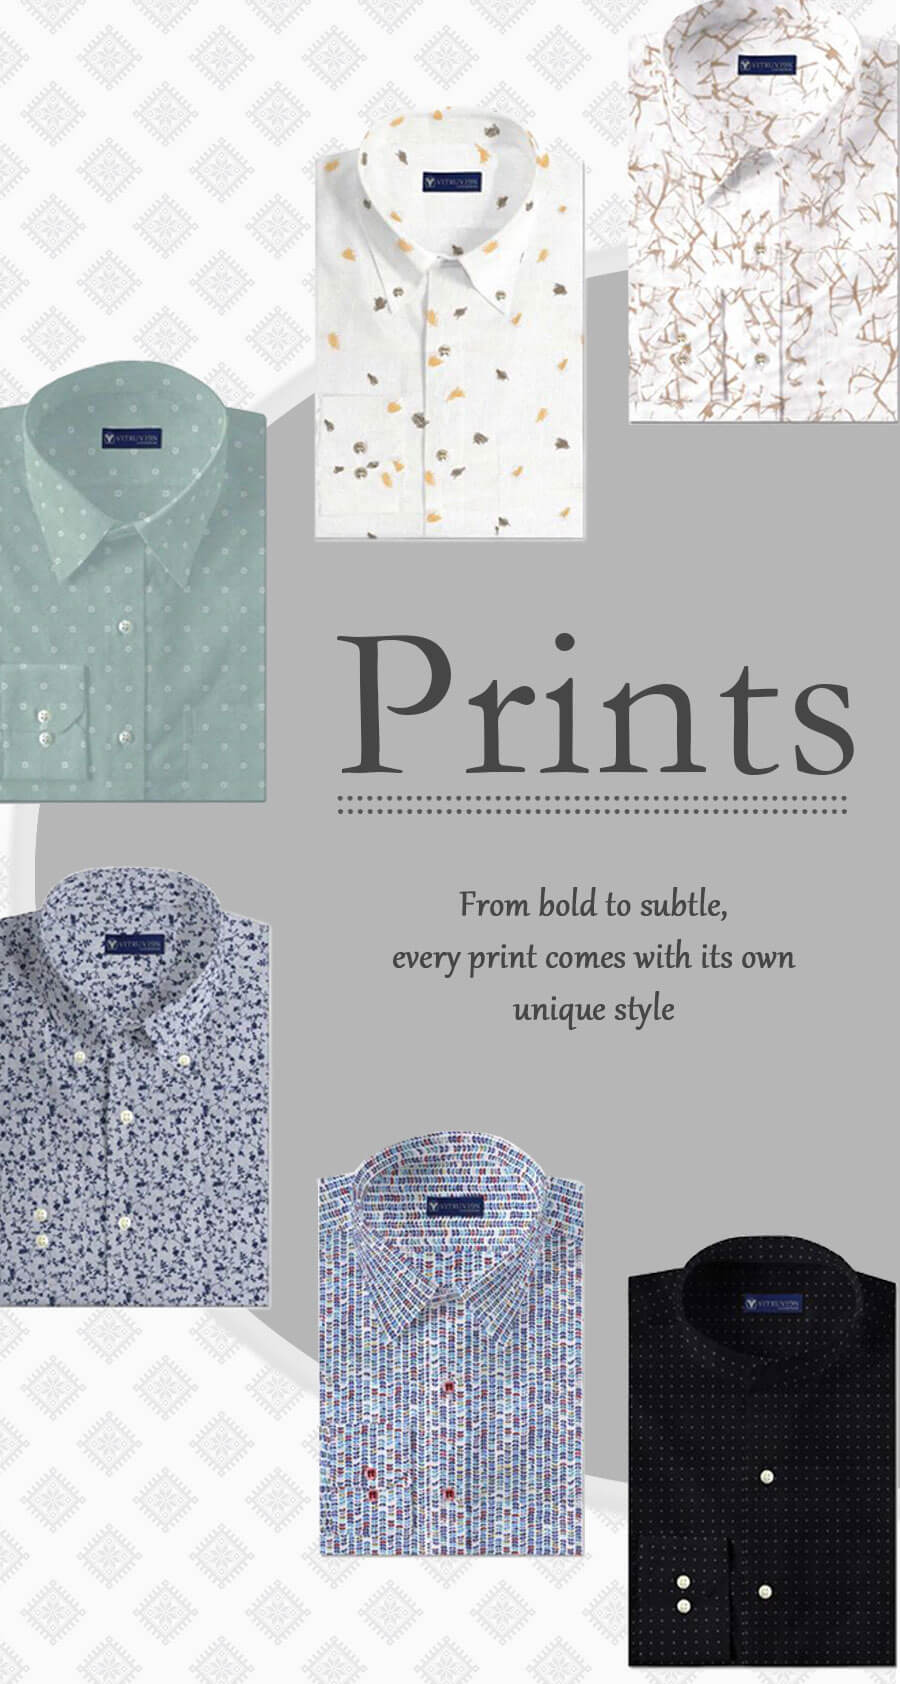 printed custom shirts